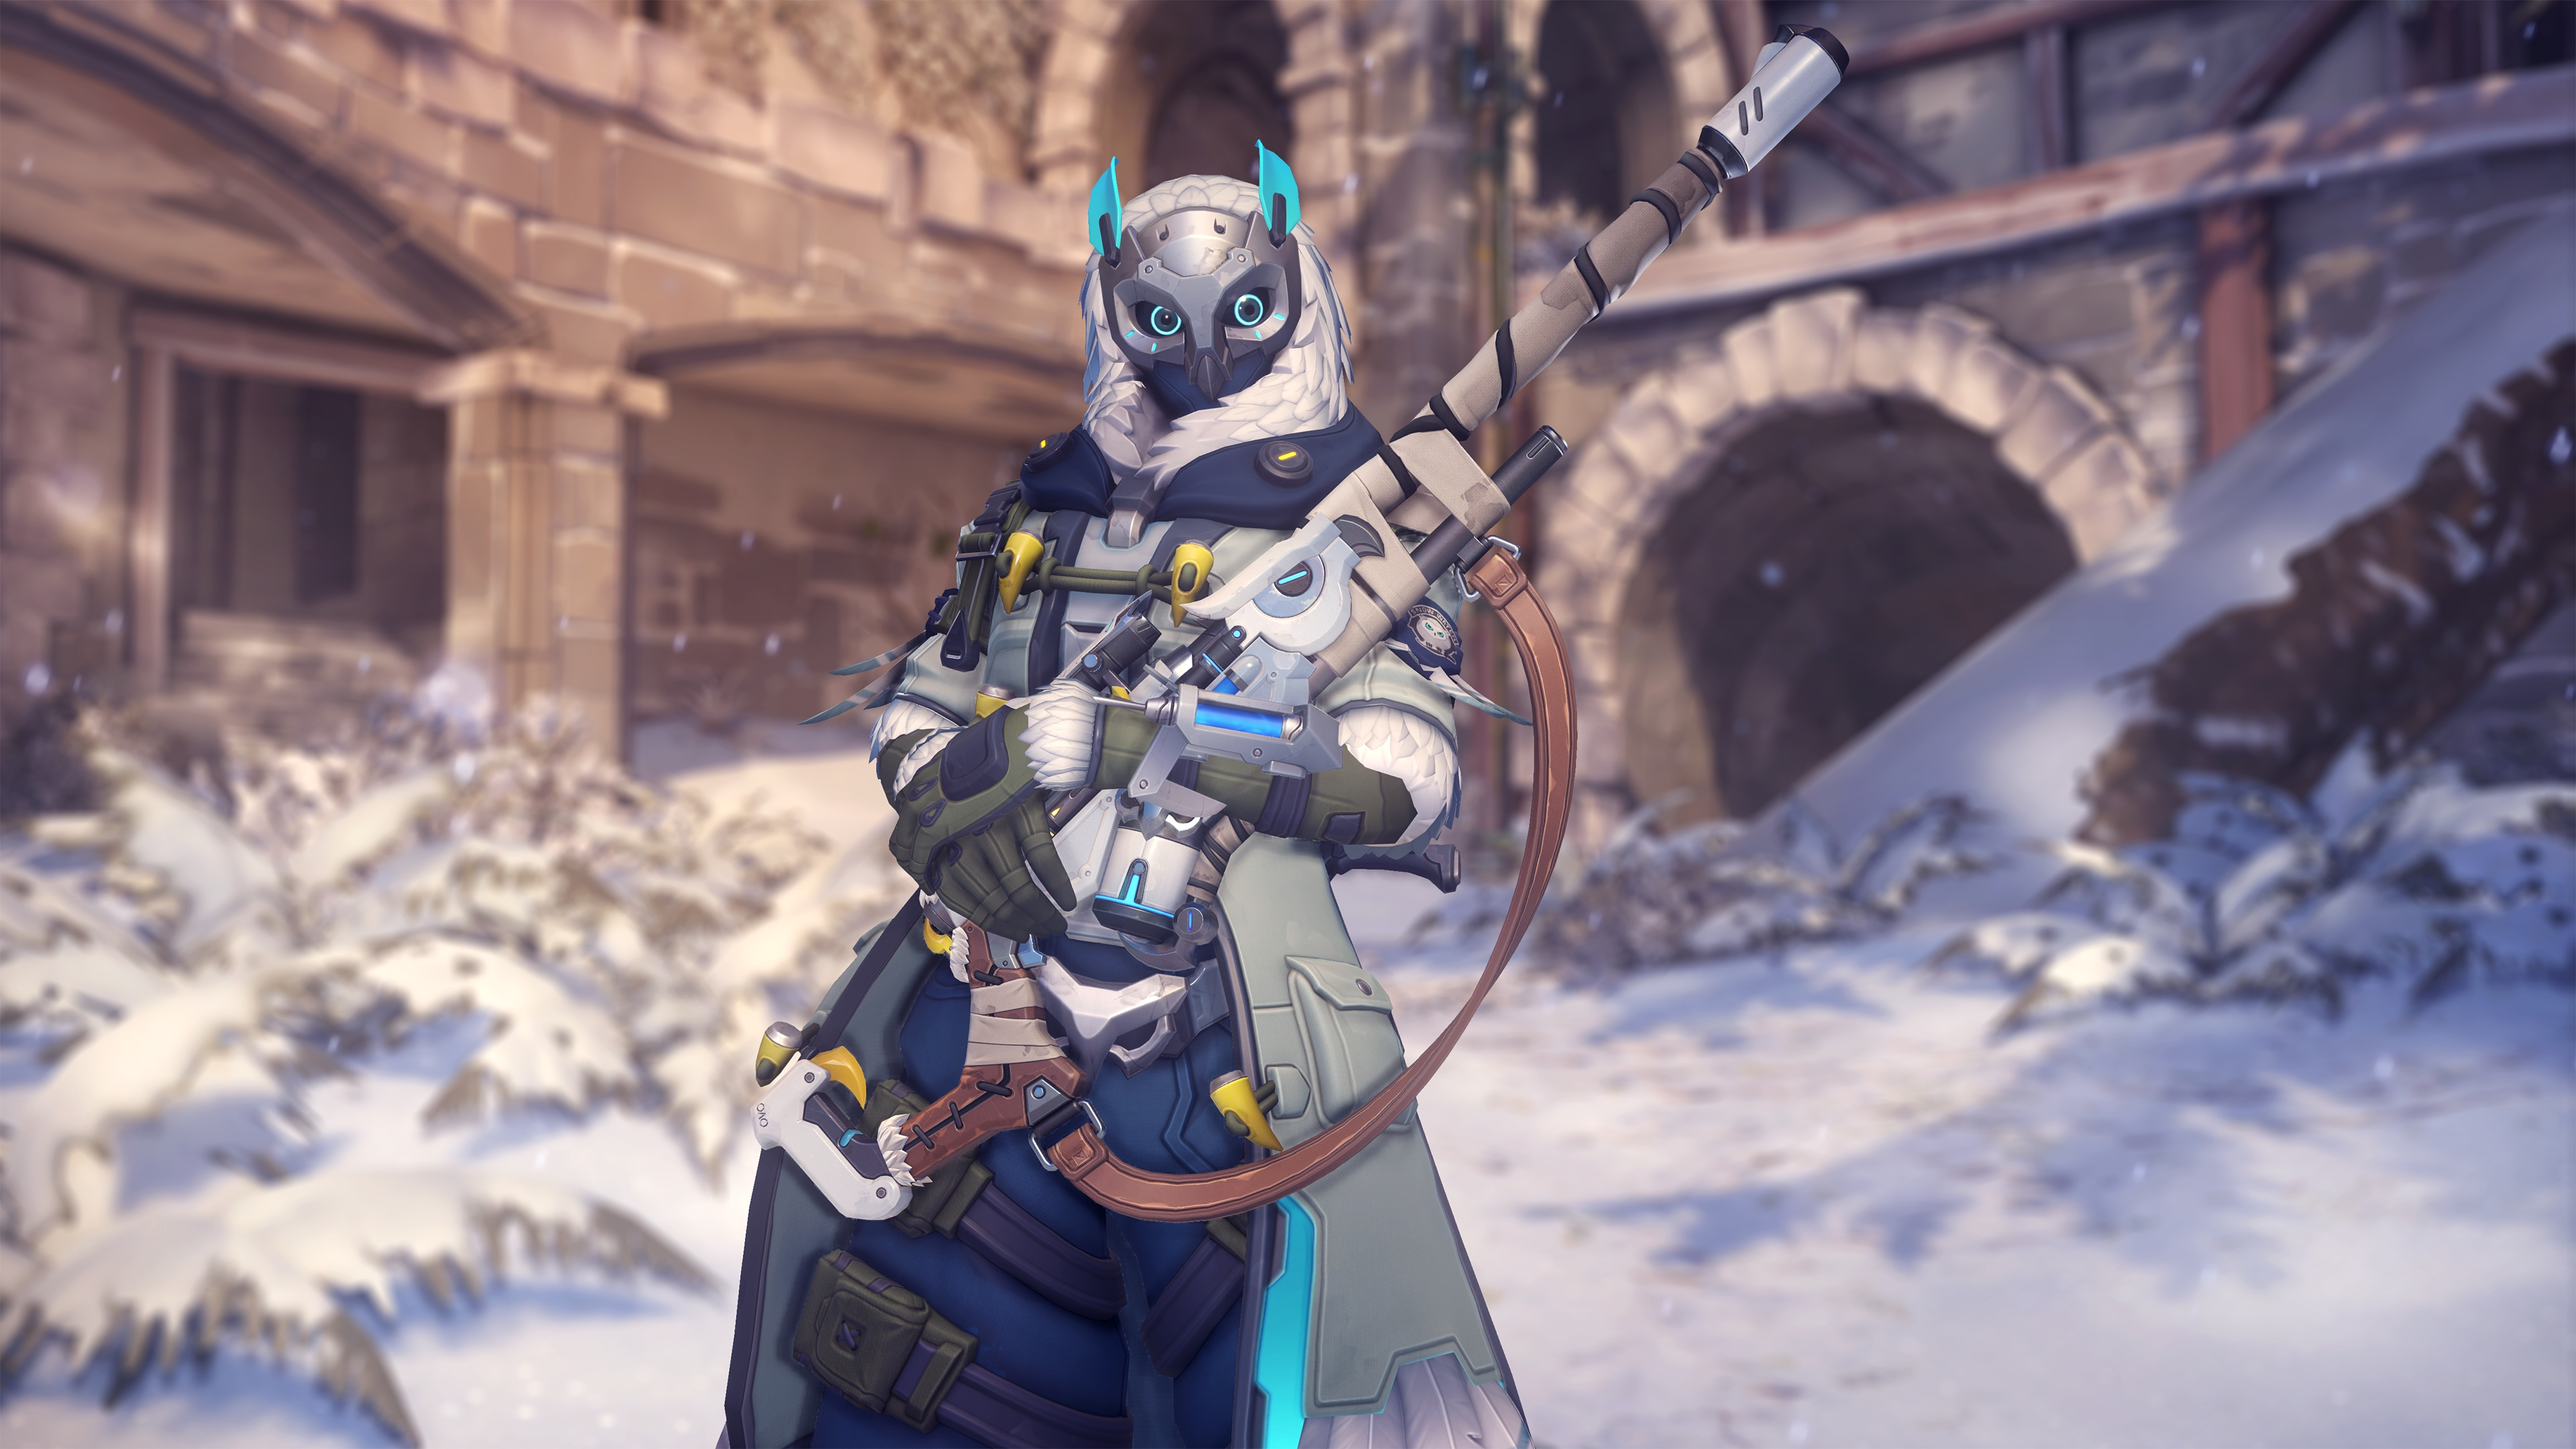 Overwatch Fps Shooter Action Fighting Sci Fi Futuristic